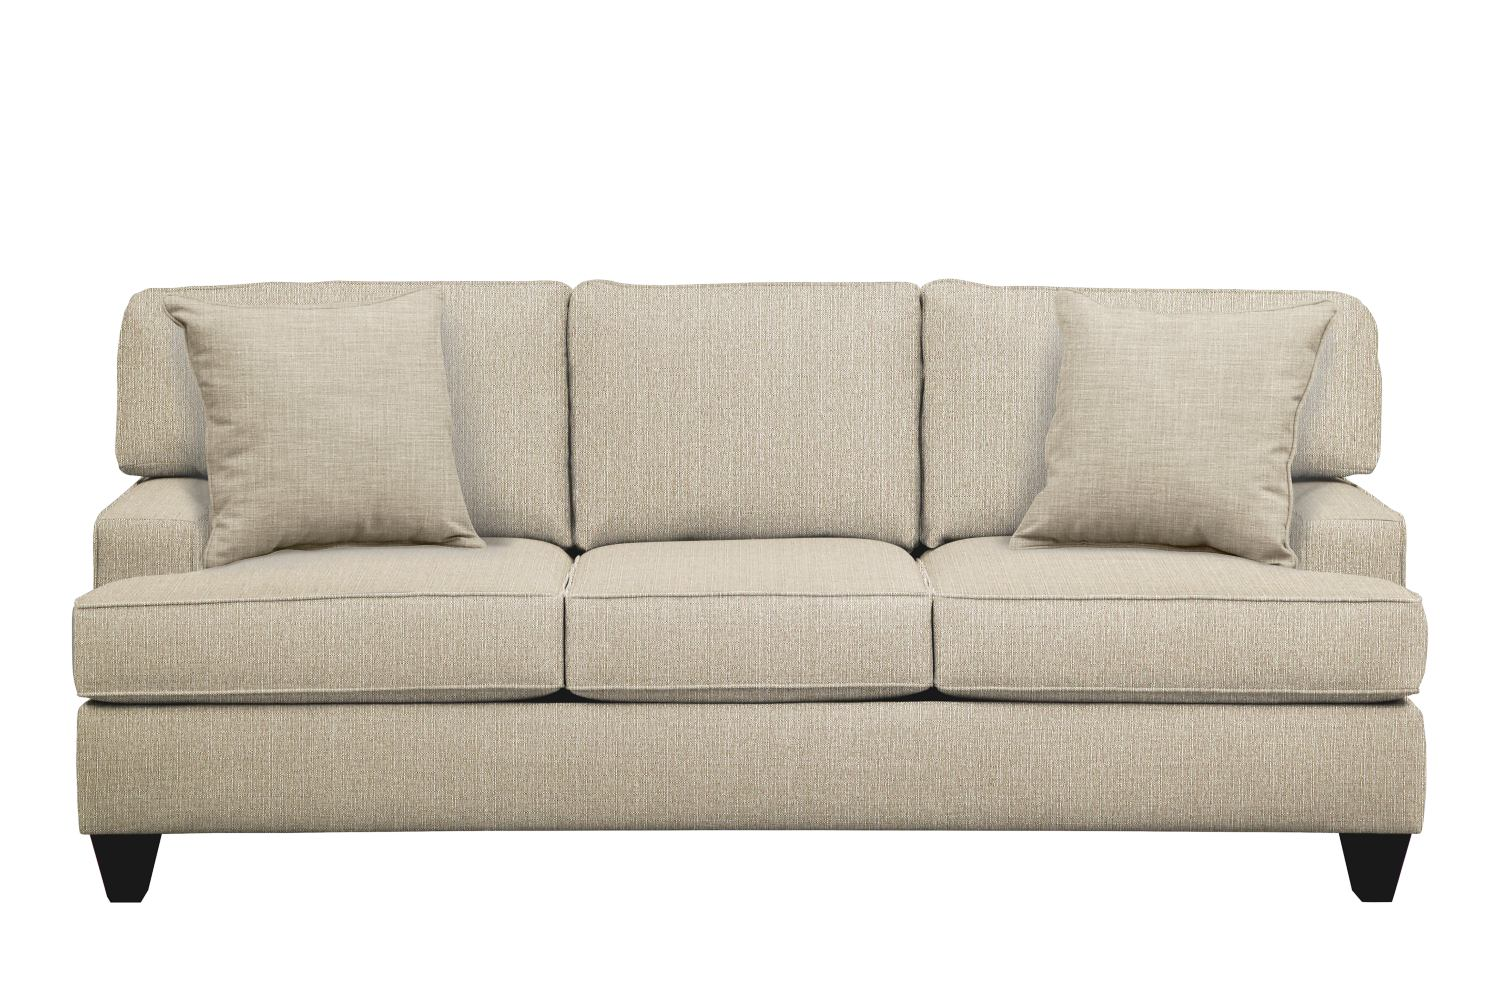 "Living Room Furniture - Conner Track Arm Sofa 87"" Depalma Taupe w/ Depalma Taupe  Pillow"